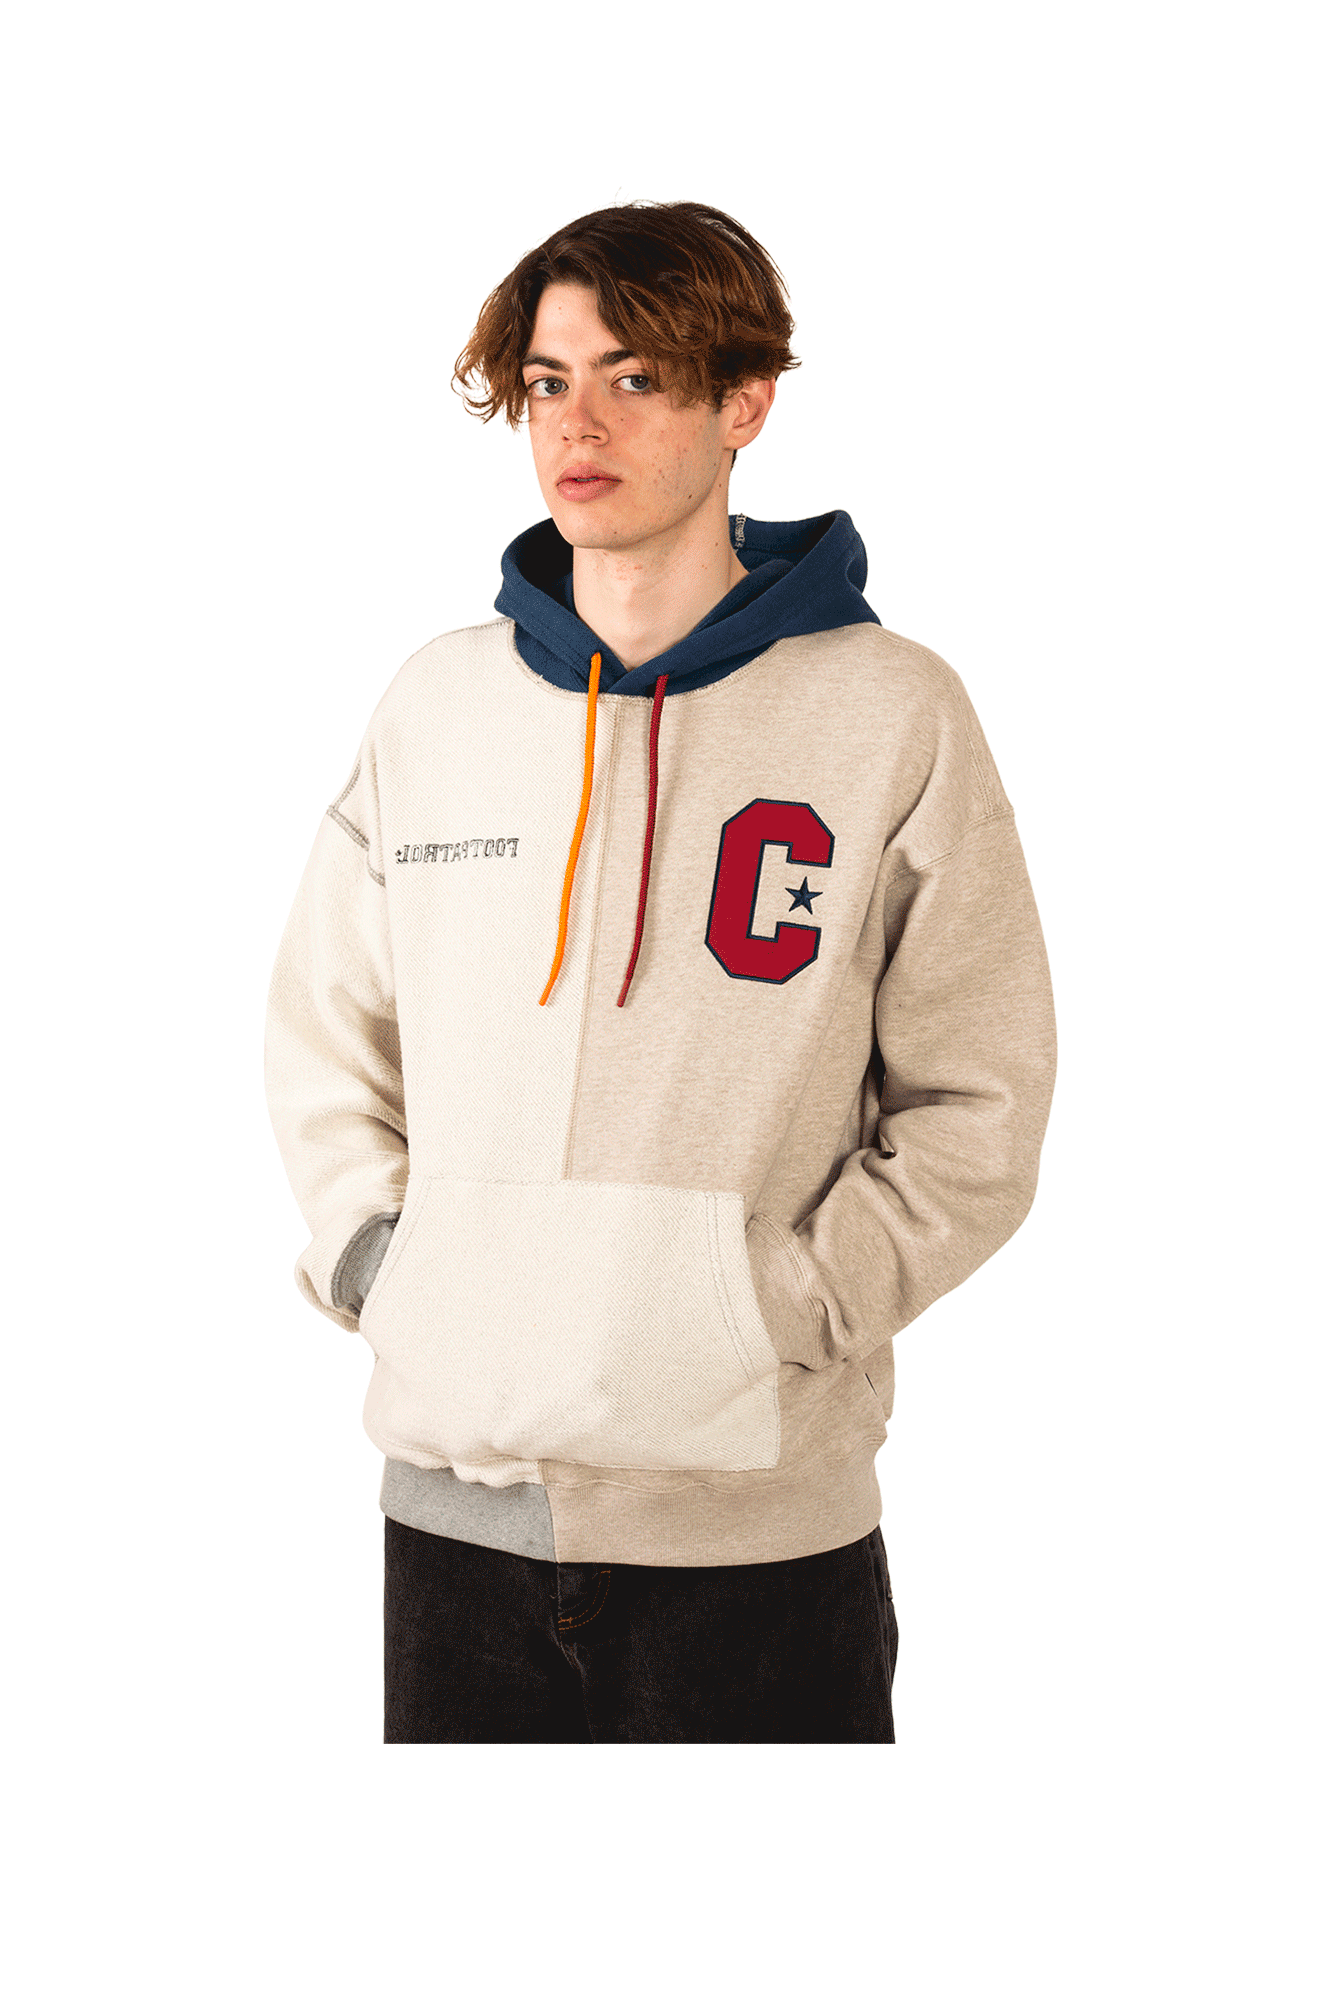 Converse Sweaters Pullover Heater X Footpatrol Brown 10017721#000#121#XL - One Block Down